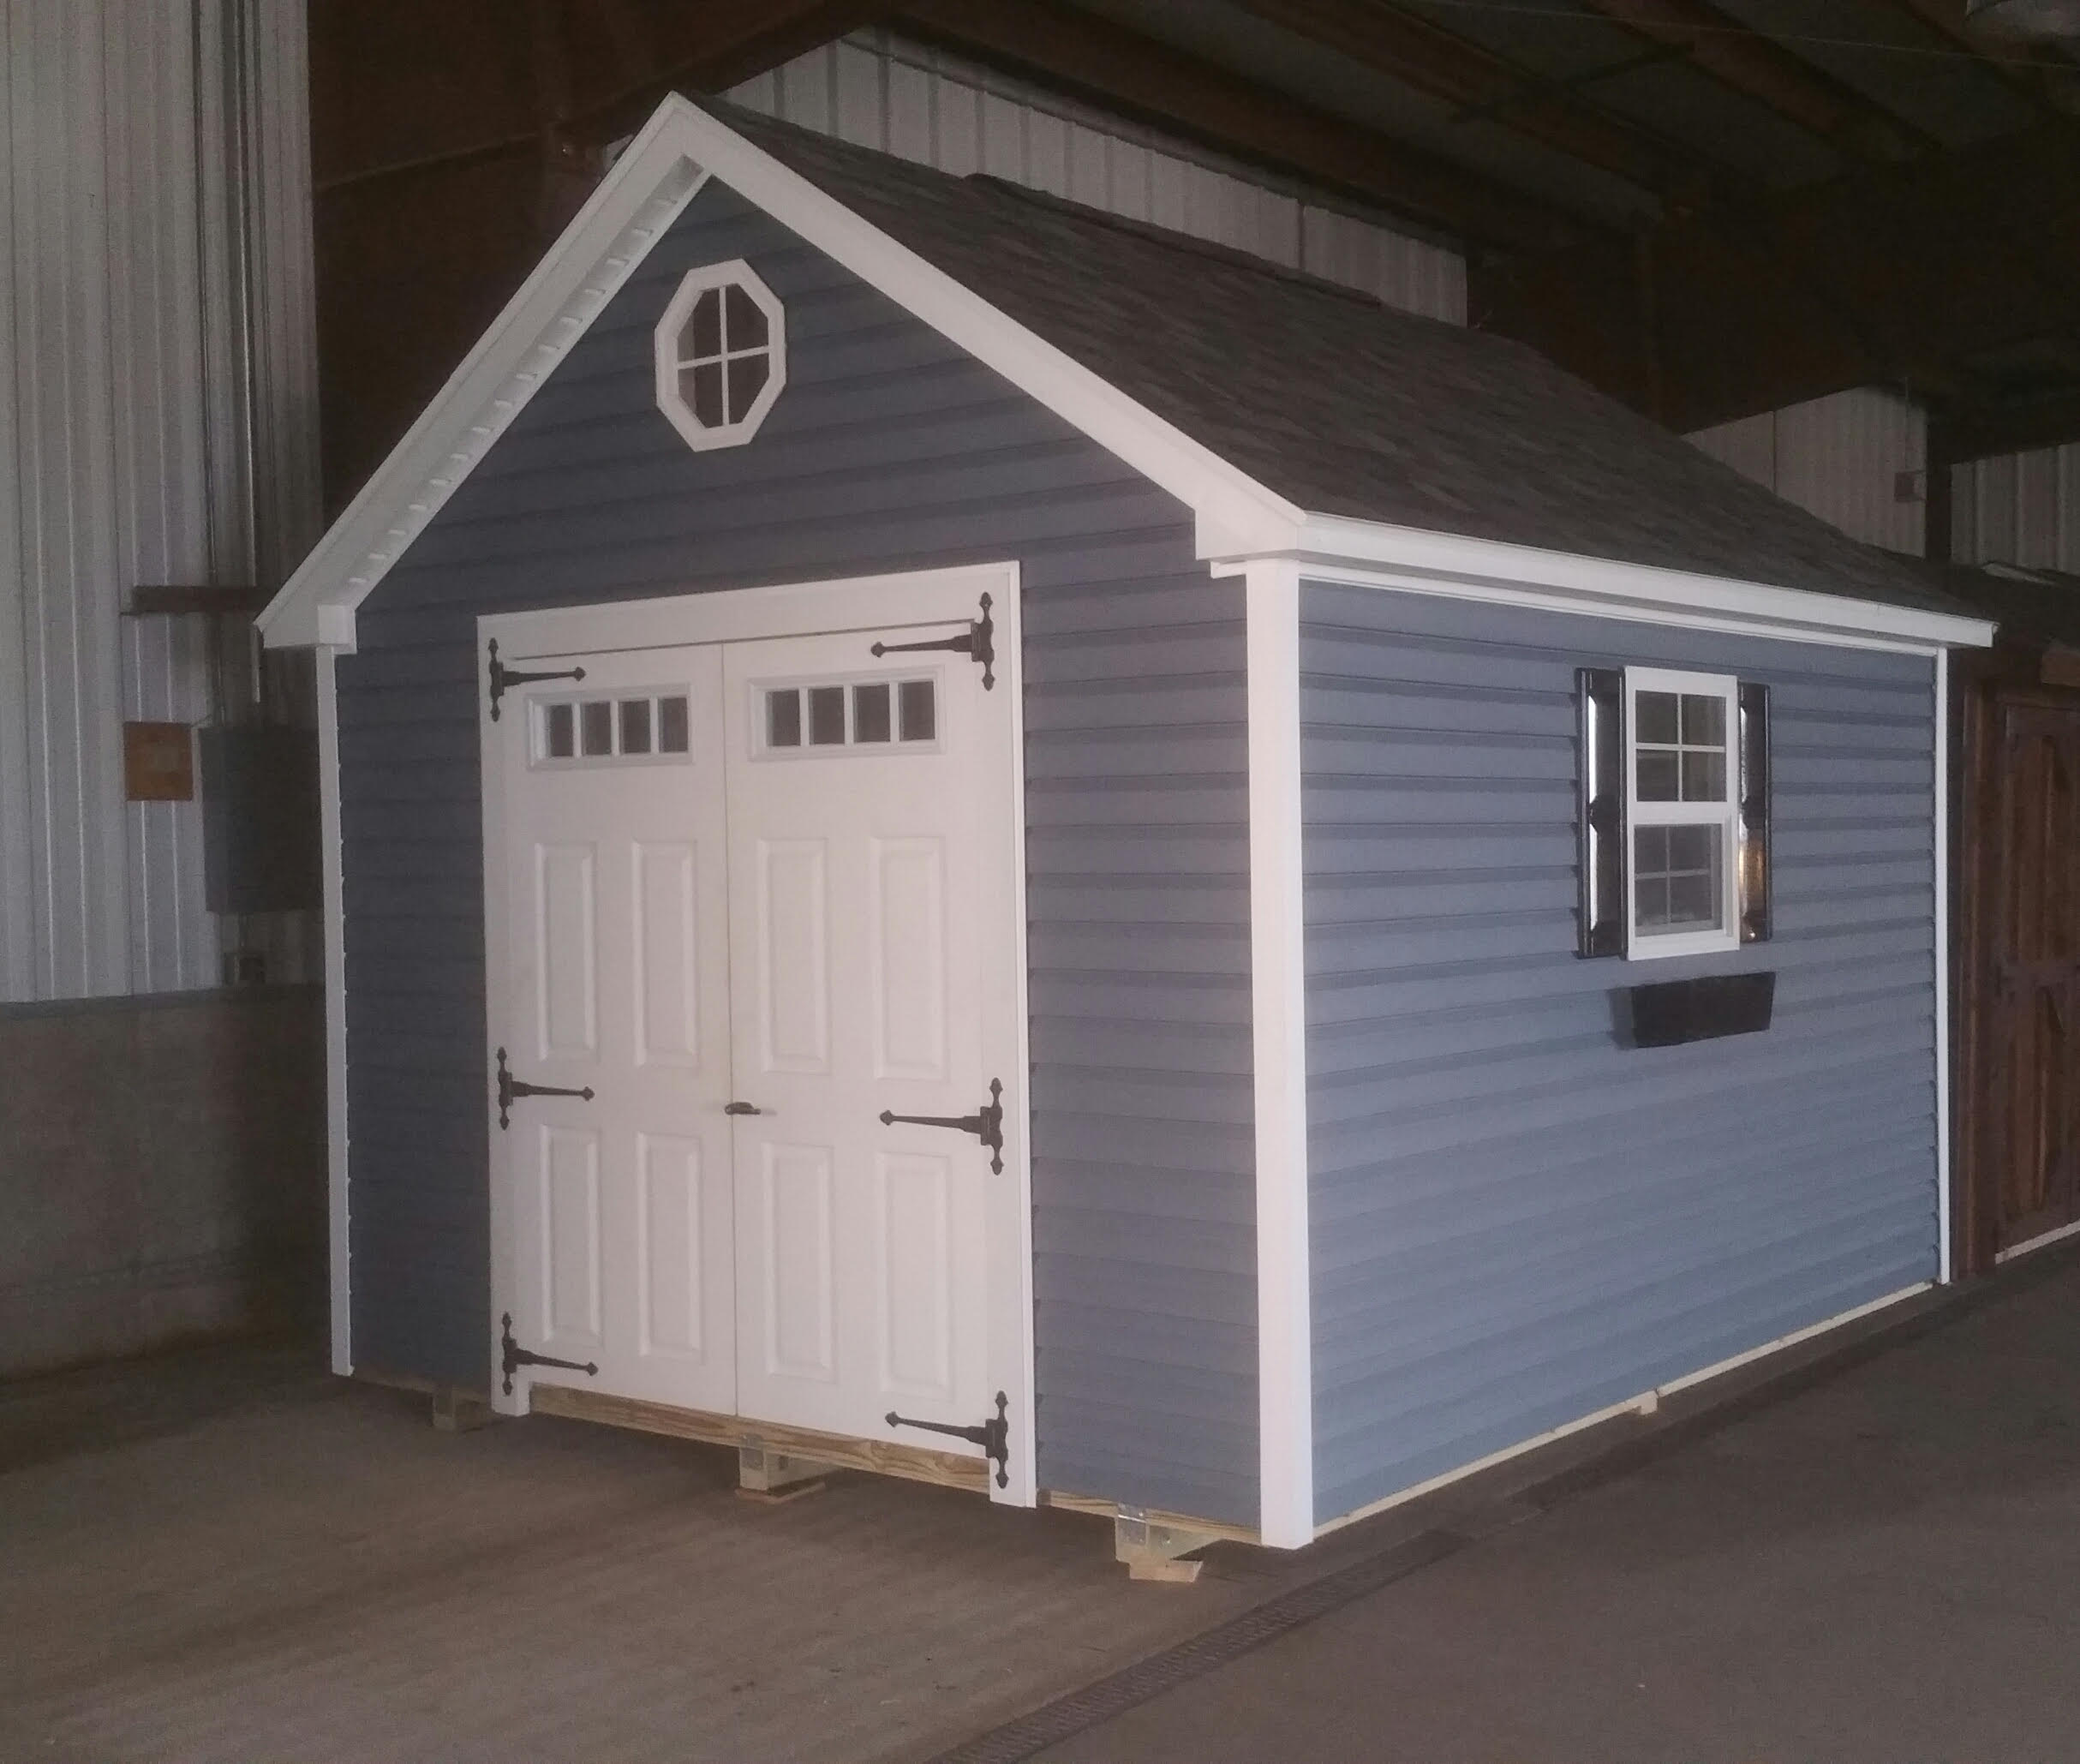 Gable style sheds by star construction for Gable sheds